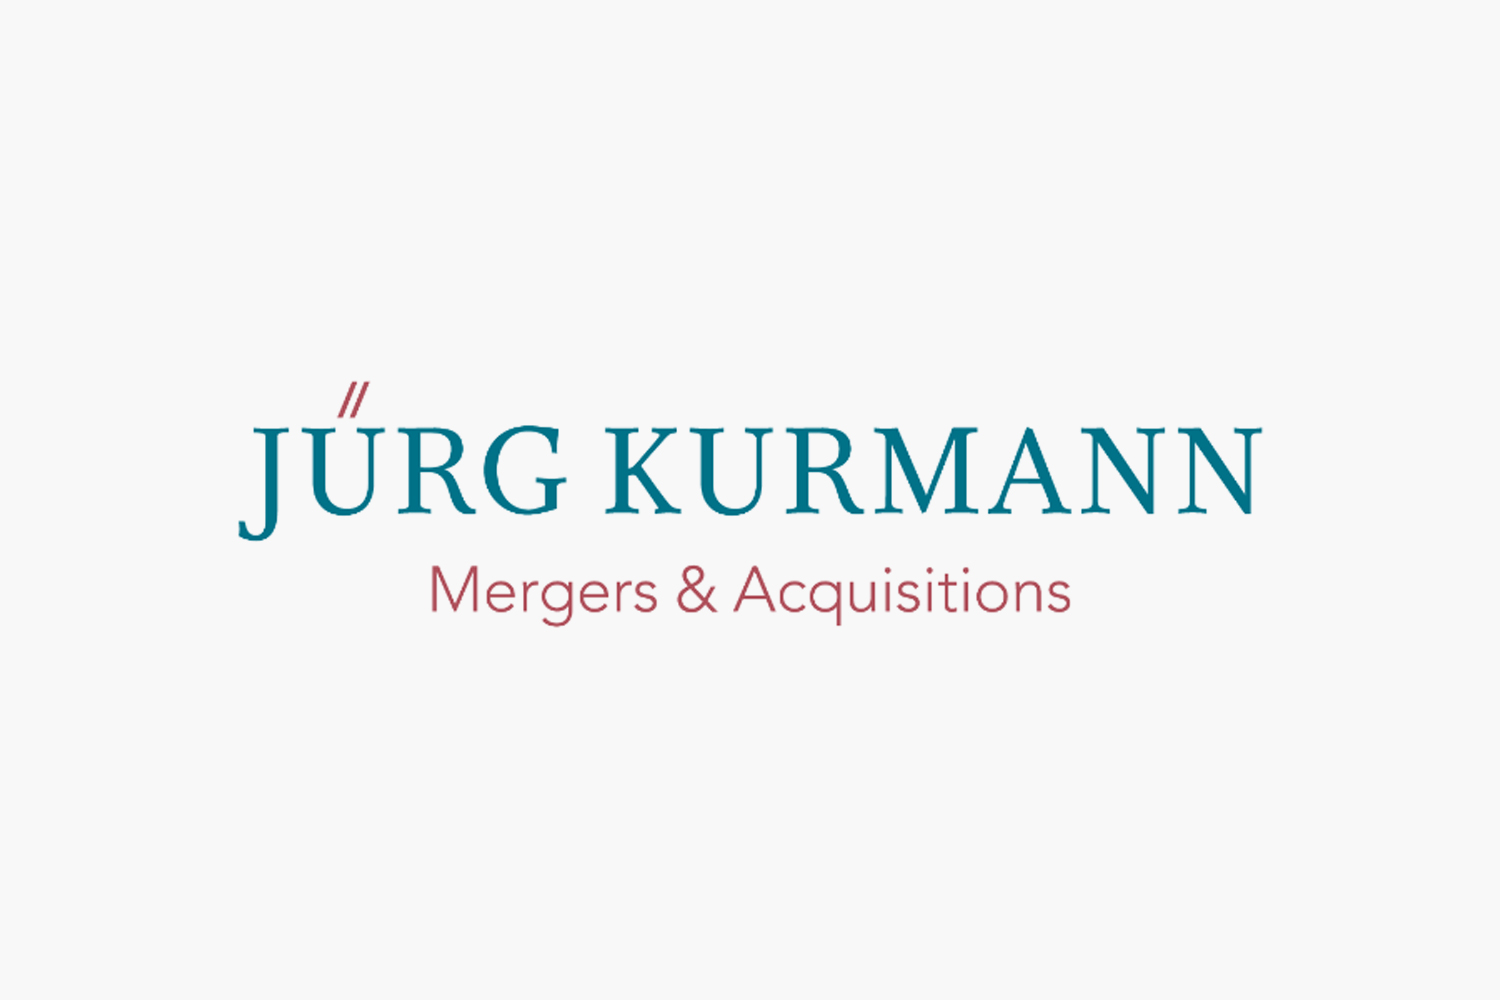 Online Marketing für Jürg Kurmann M&A